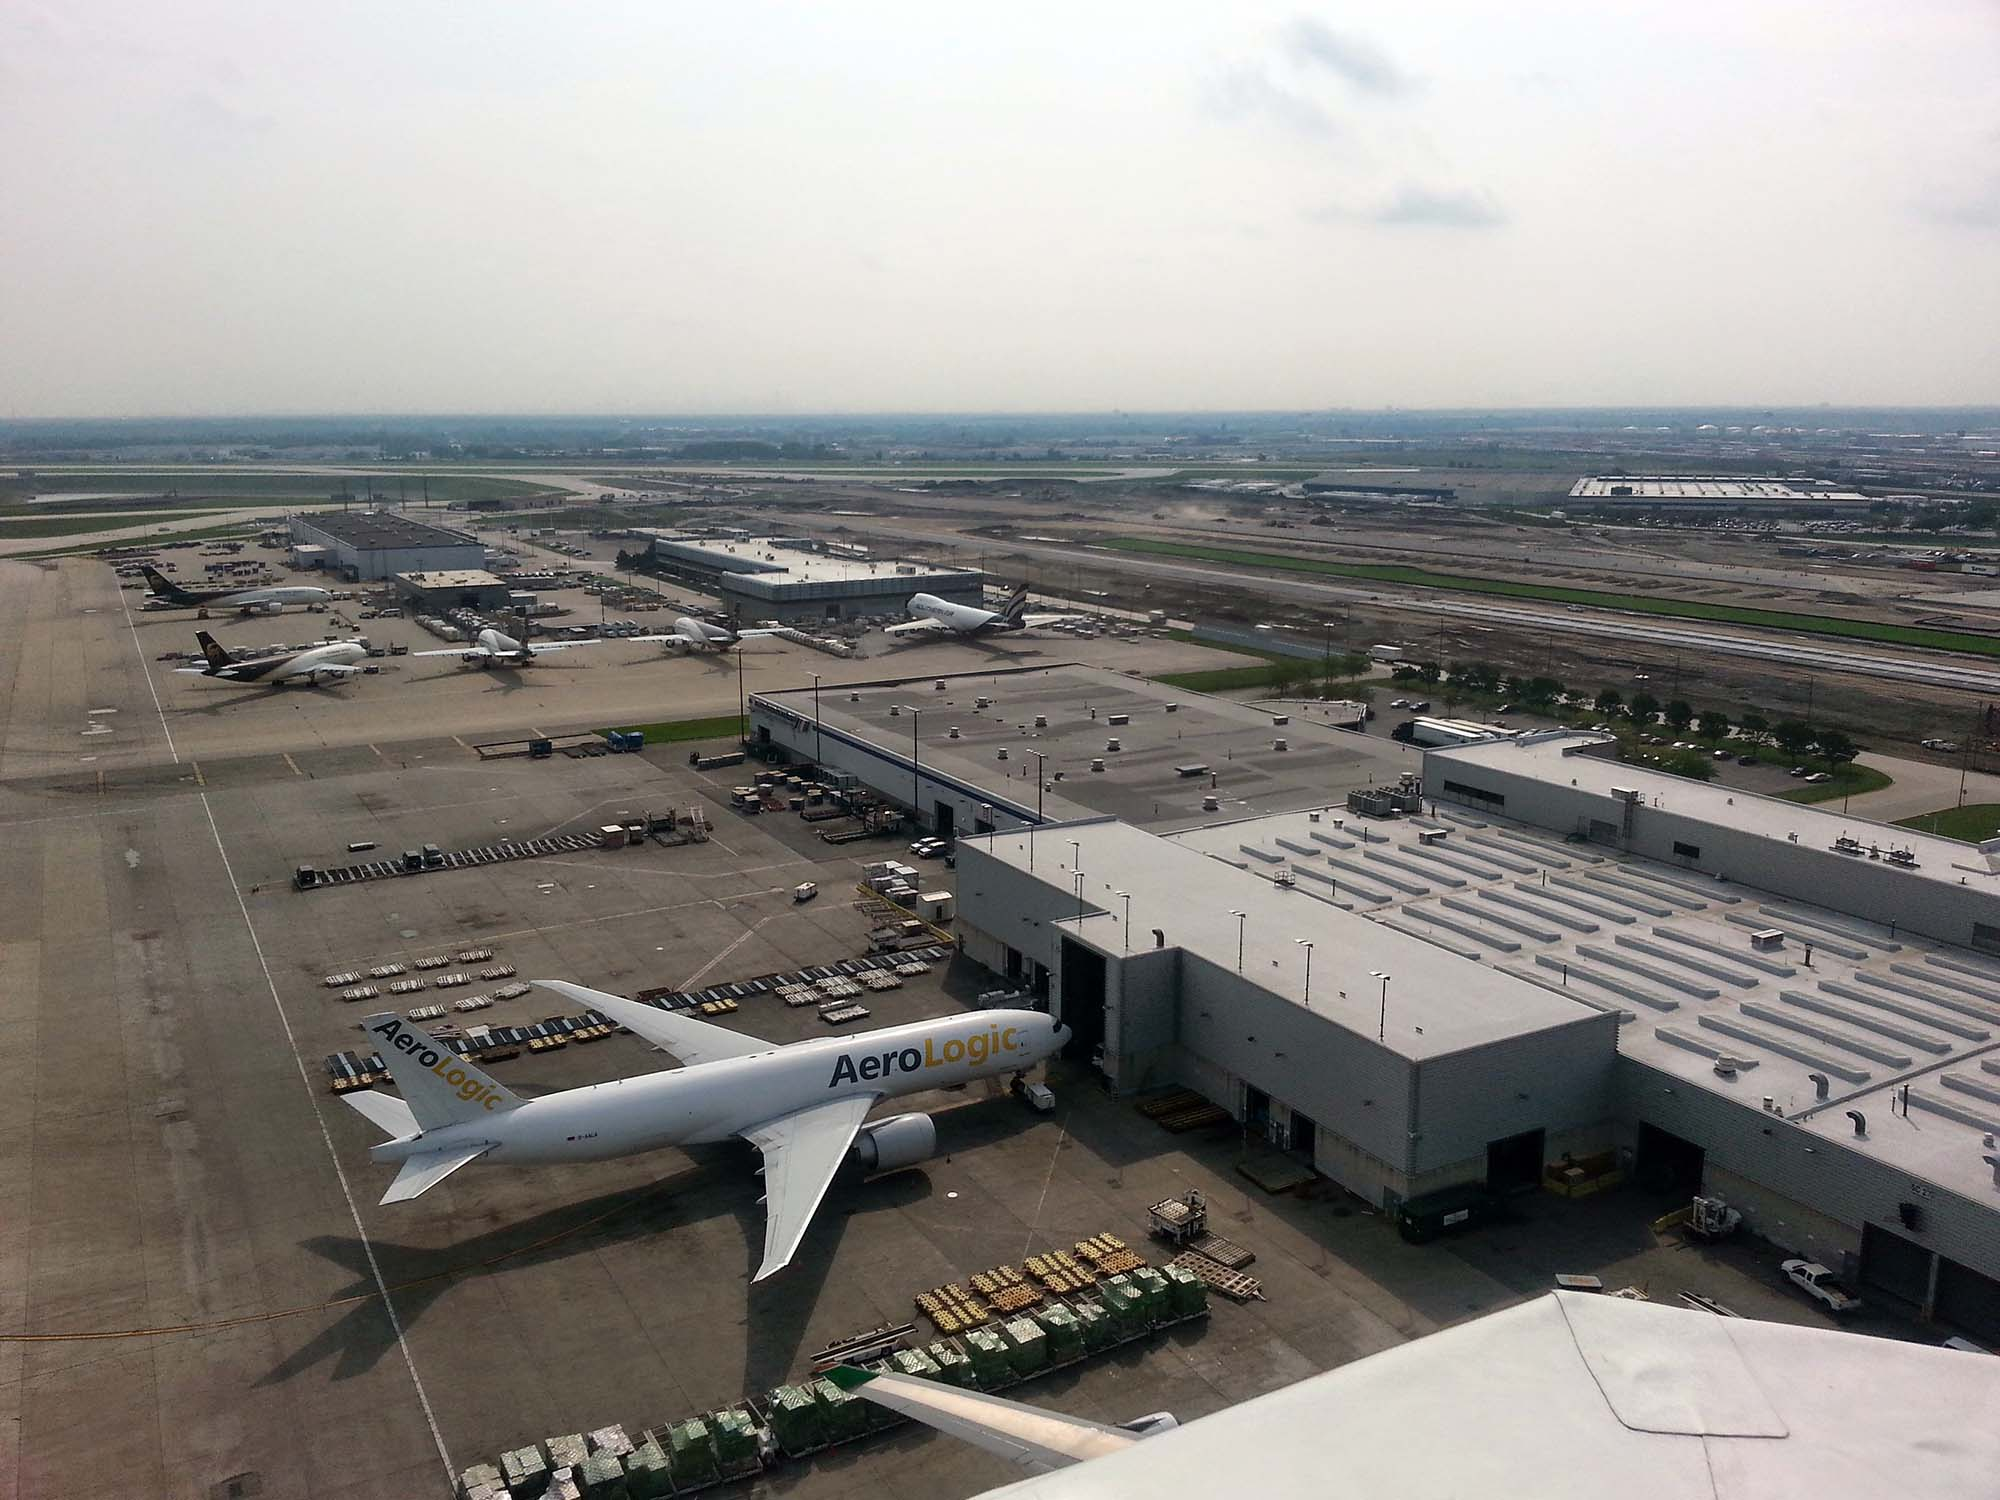 At O'Hare International Airport (ORD), tracking and reporting funding to the various profiles—Airport Improvement Program Grant, Passenger Facility Charges, and General Airport Revenue Bonds—and third-party financing was critical on a monthly basis.